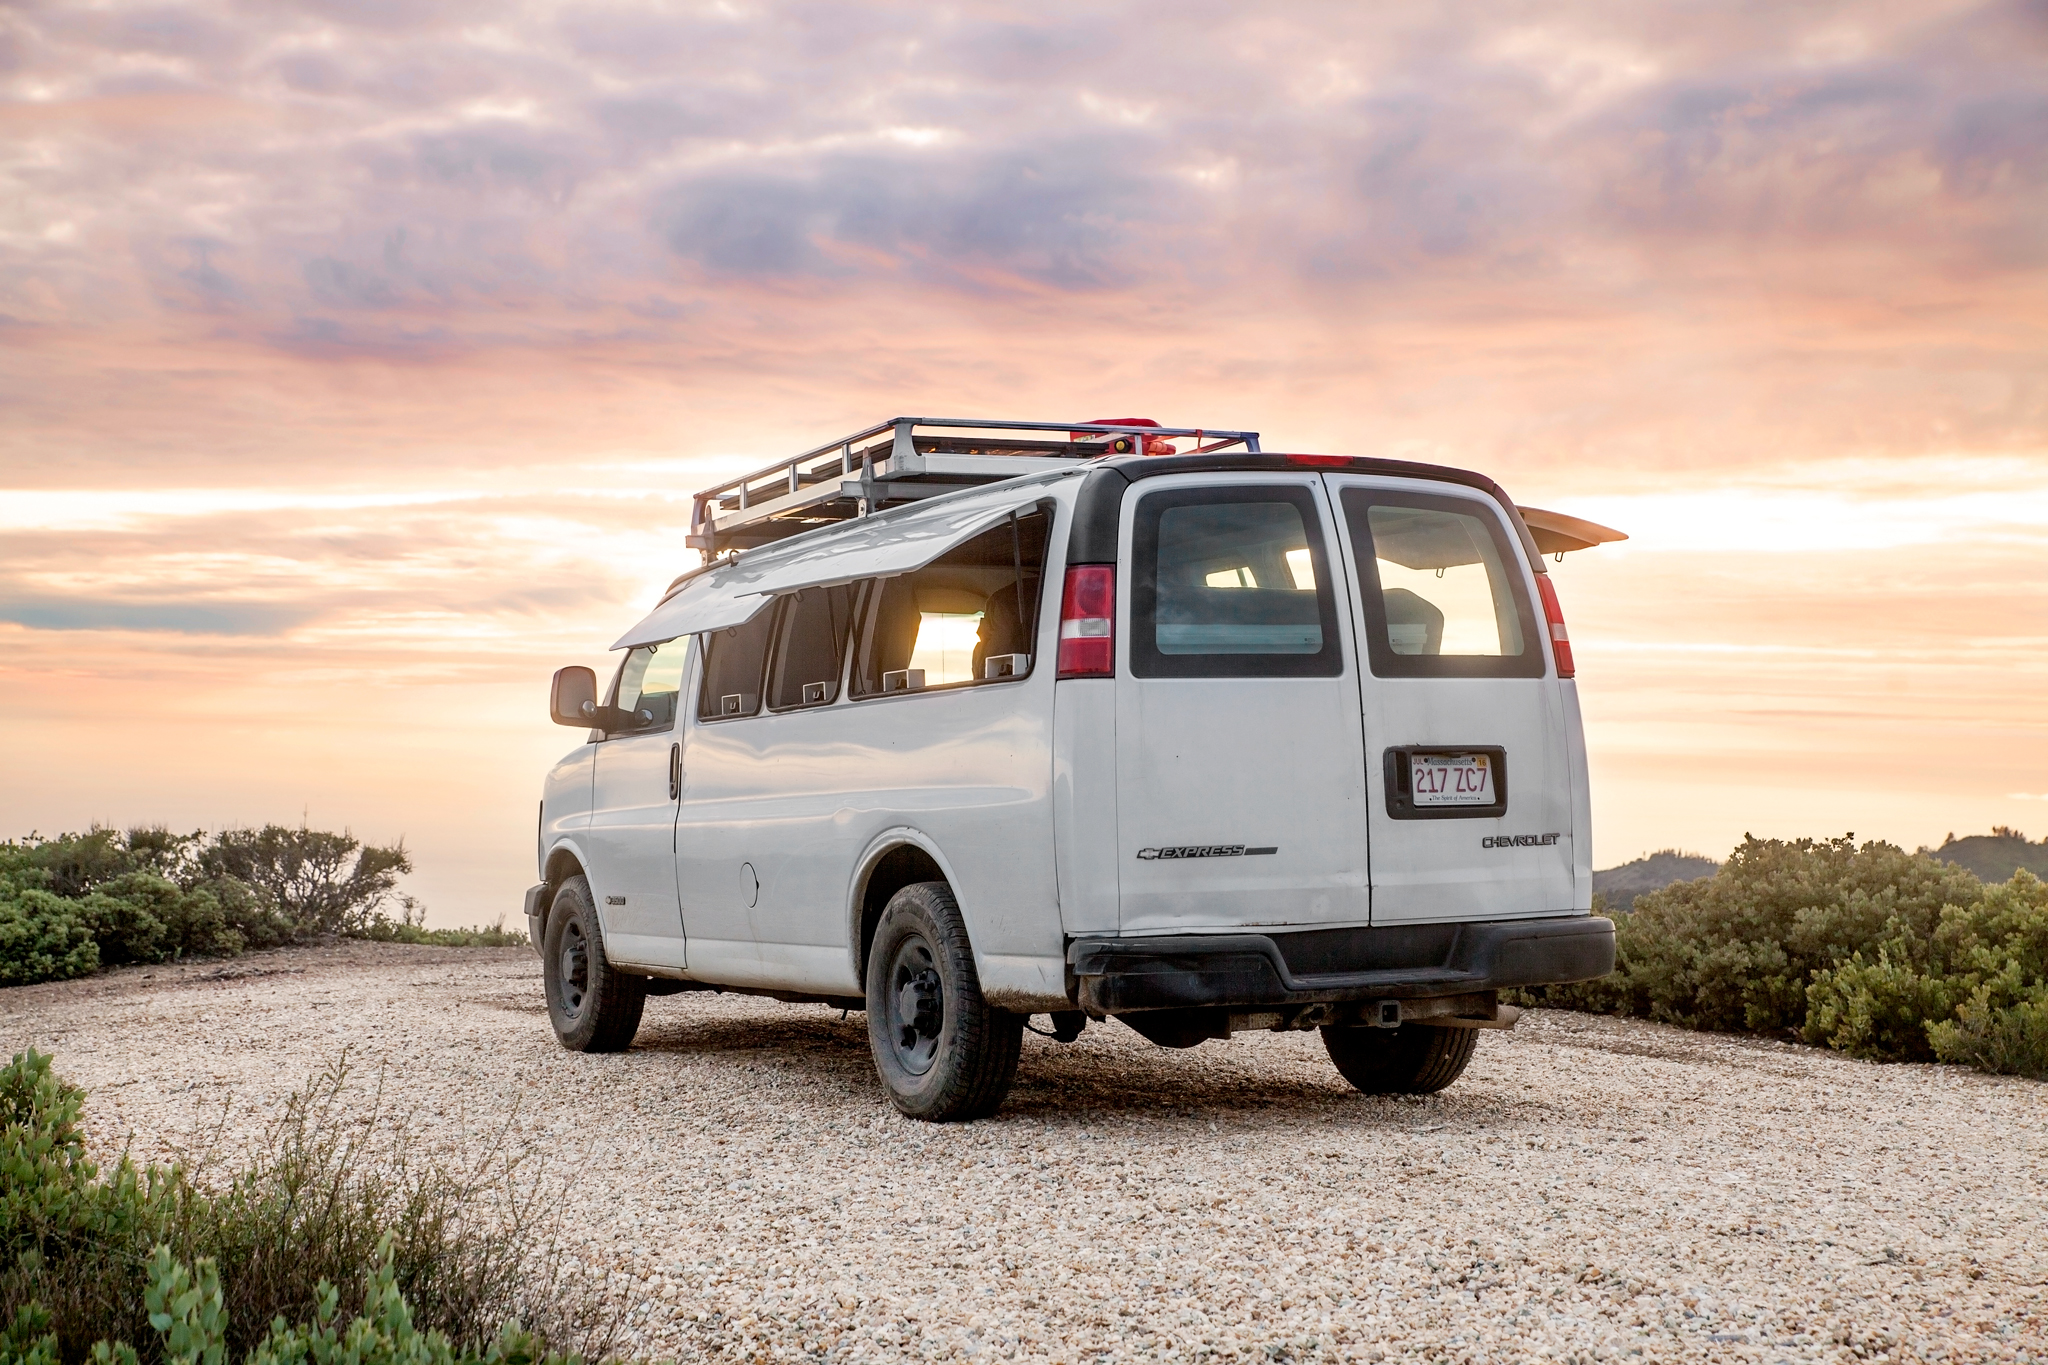 The Vanual: Customizing a Van for a Mobile Lifestyle